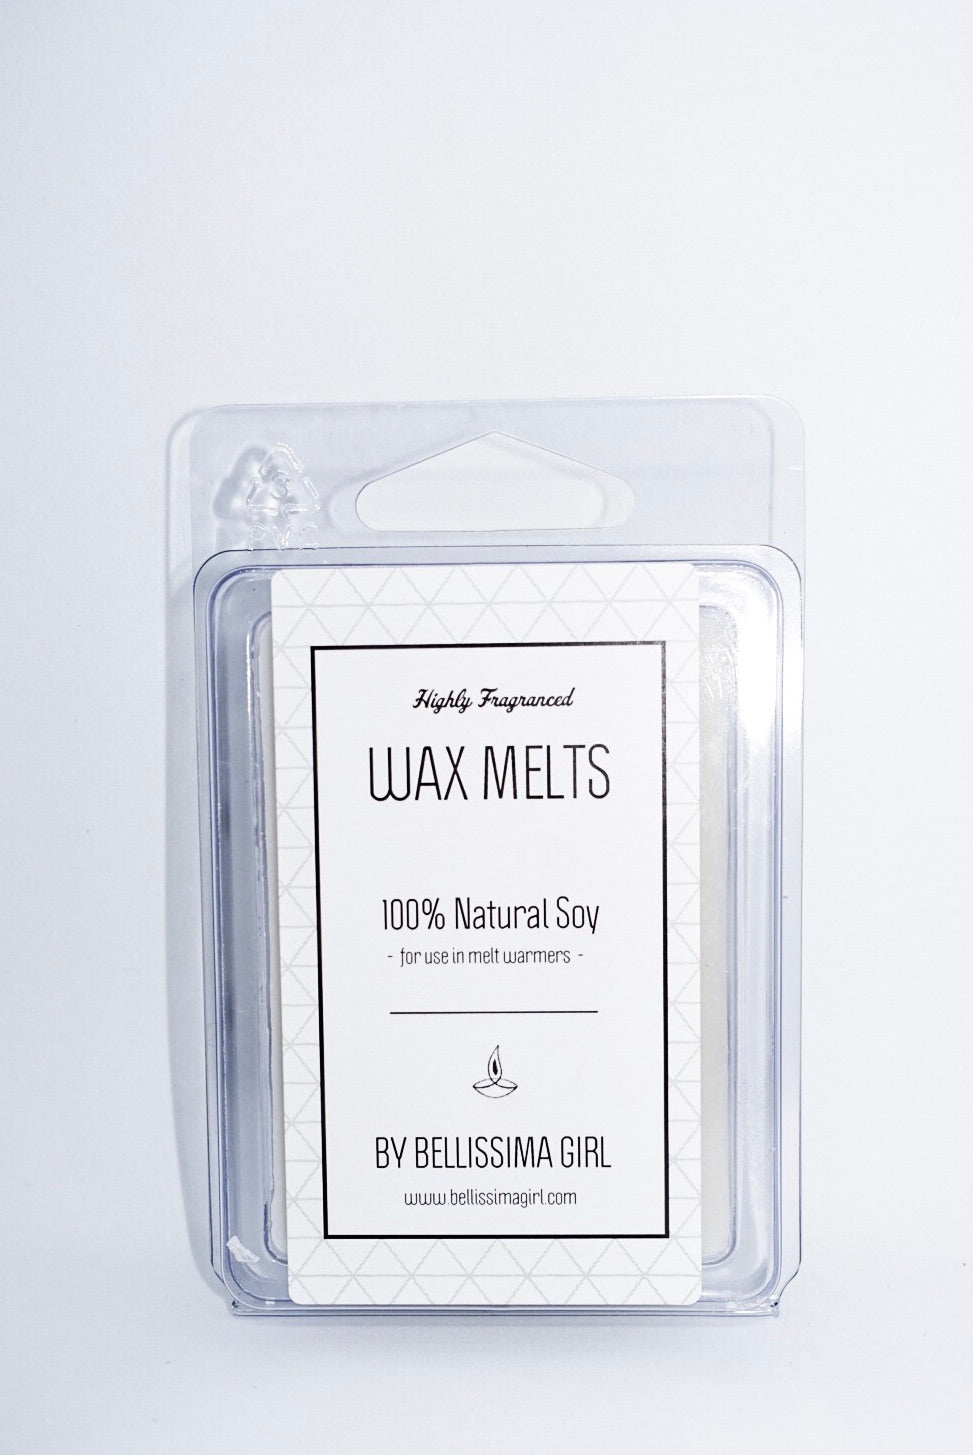 Almond Milk and Caramel Wax Melt 74g - Plush Boutique